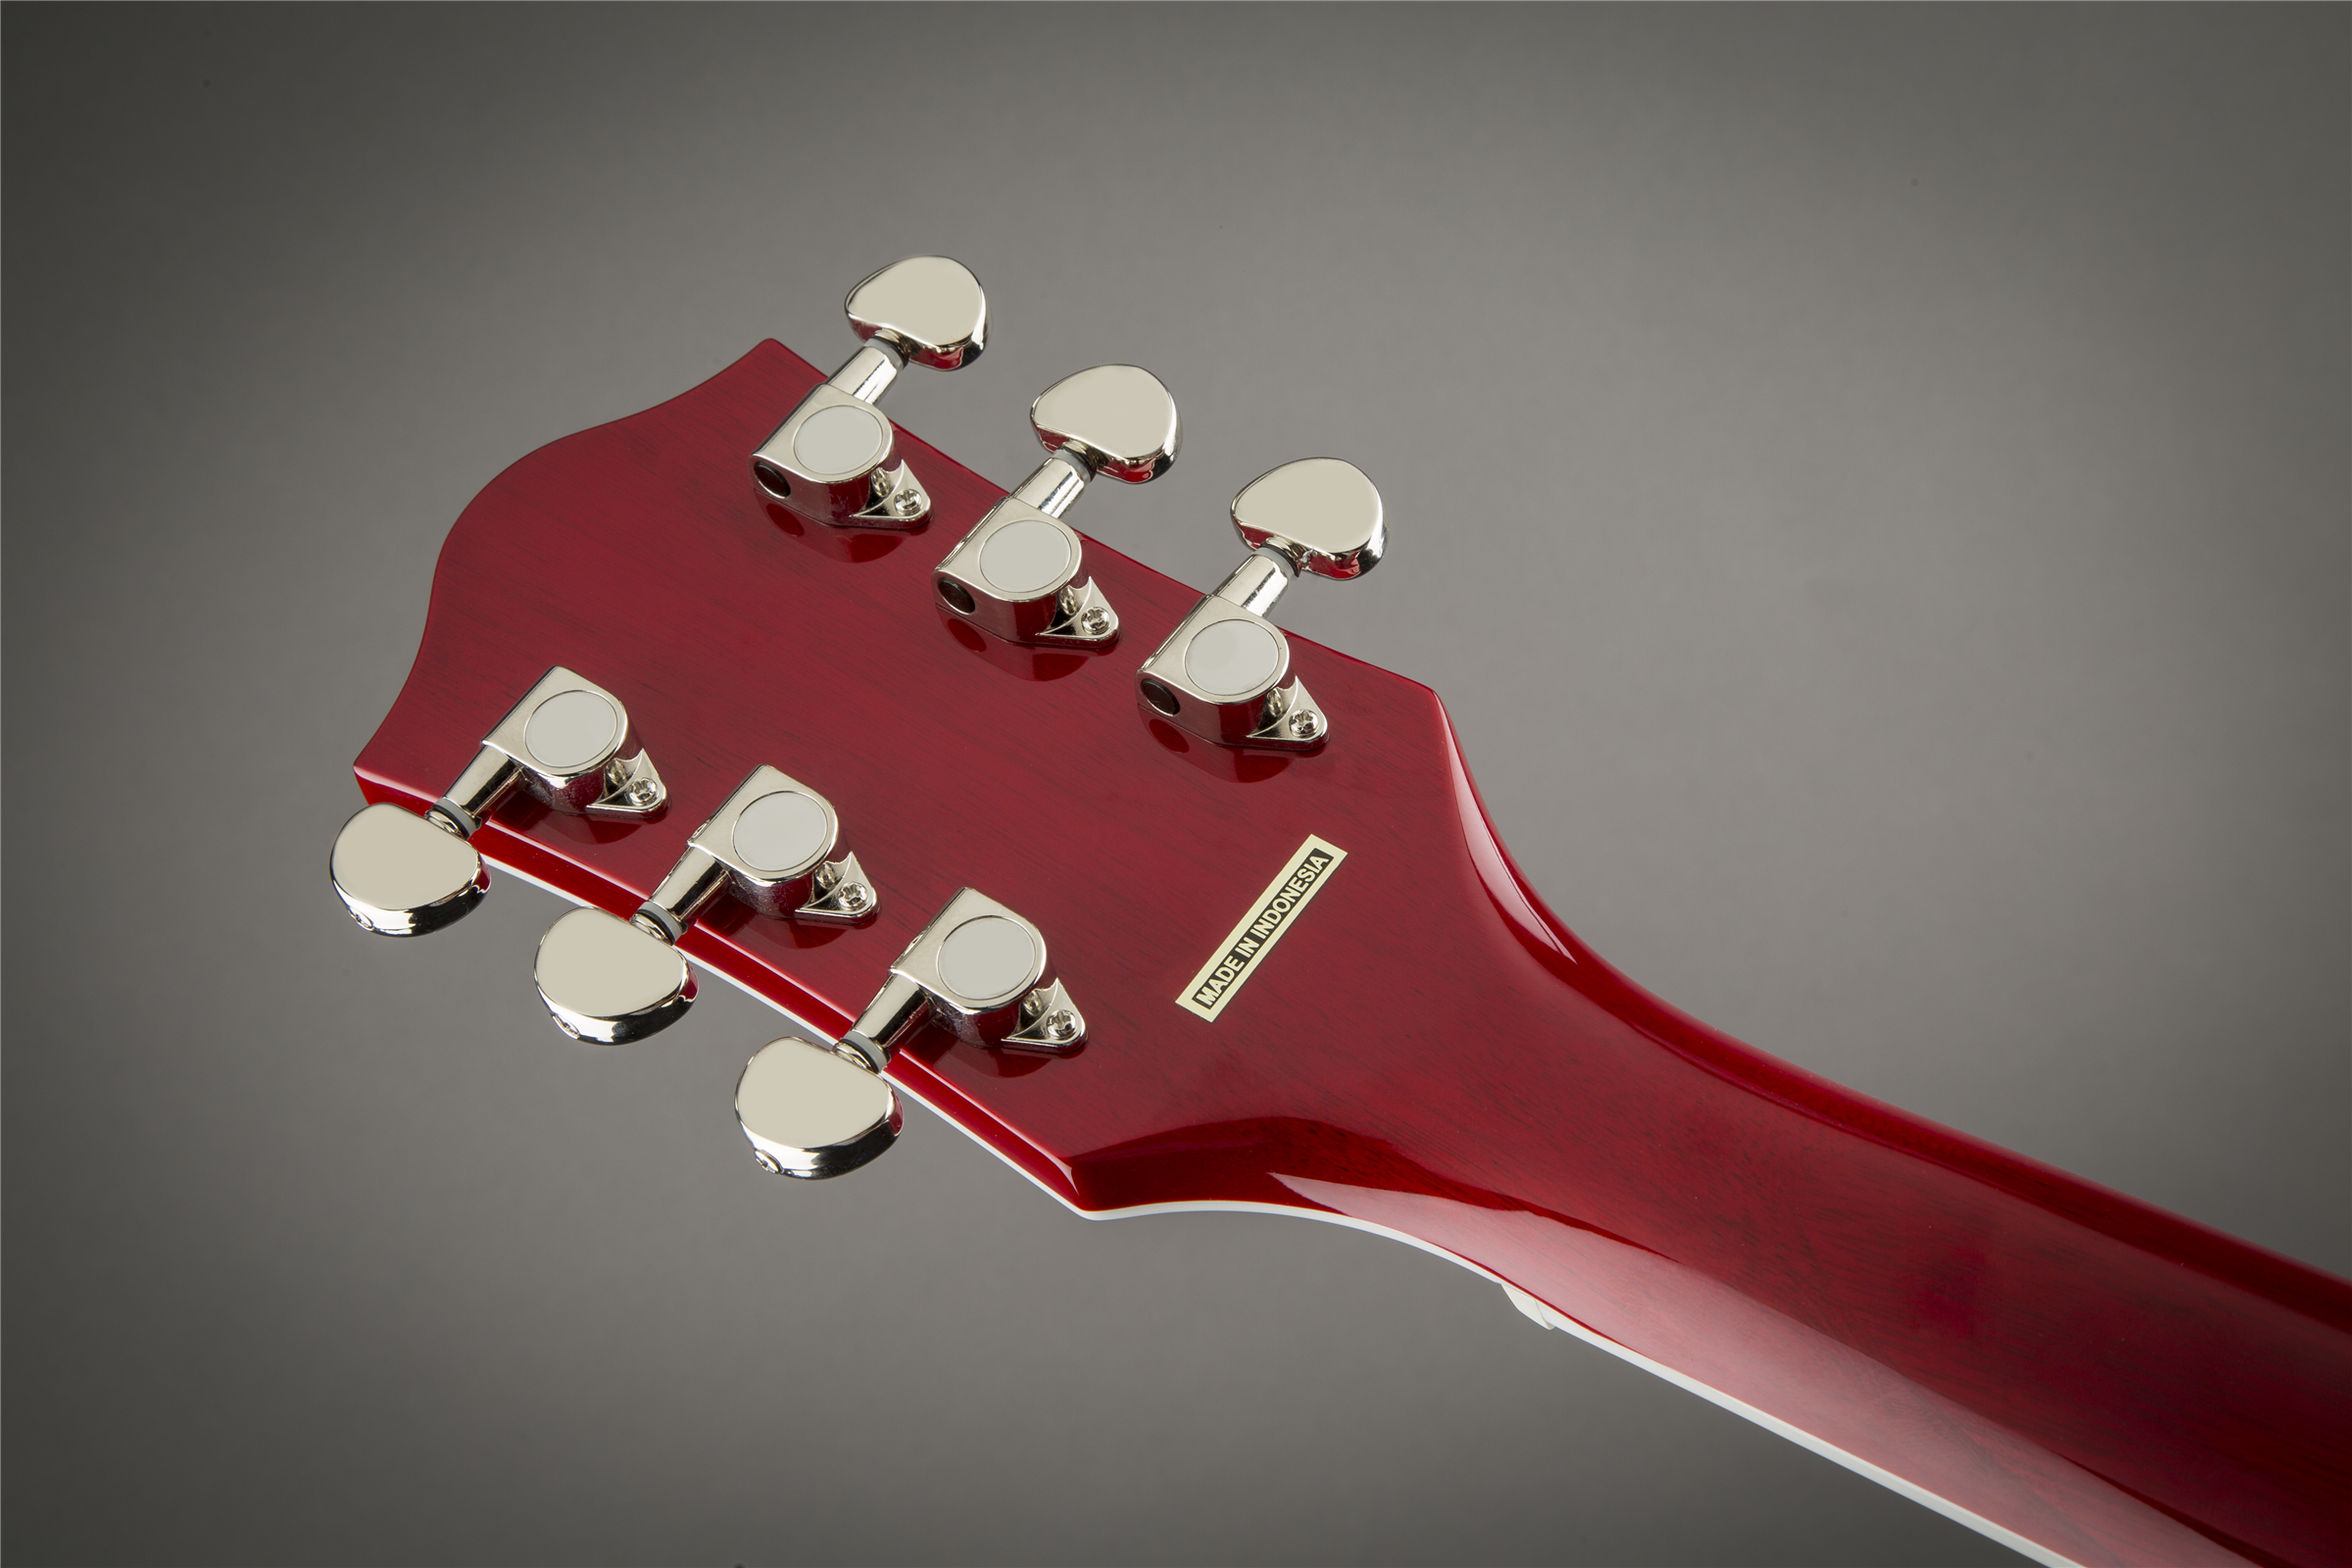 Center Block :: G2655 Streamliner™ Center Block Jr. with V-Stoptail,  Broad'Tron™ Pickups, Flagstaff Sunset